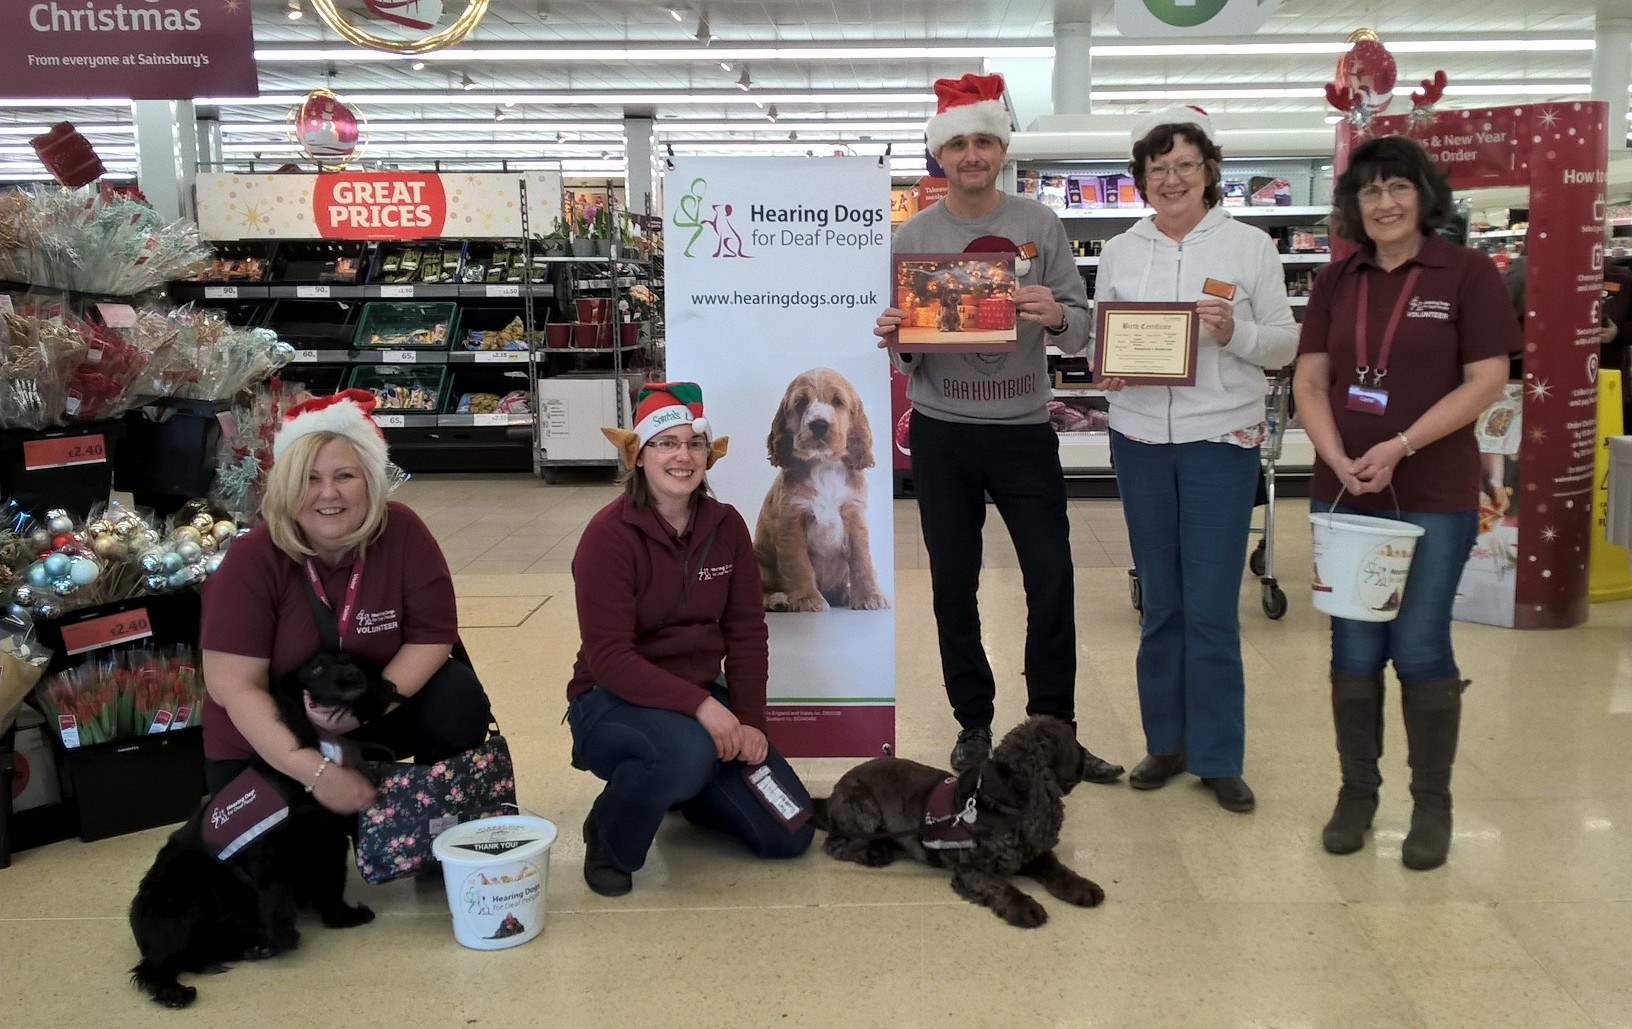 Hearing Dogs for Deaf People volunteers present deputy store manager Mark Cooper and colleague Julie Bate, with a photo and the birth certificate of hearing dog pup Willow, who has been sponsored through fundraising in store